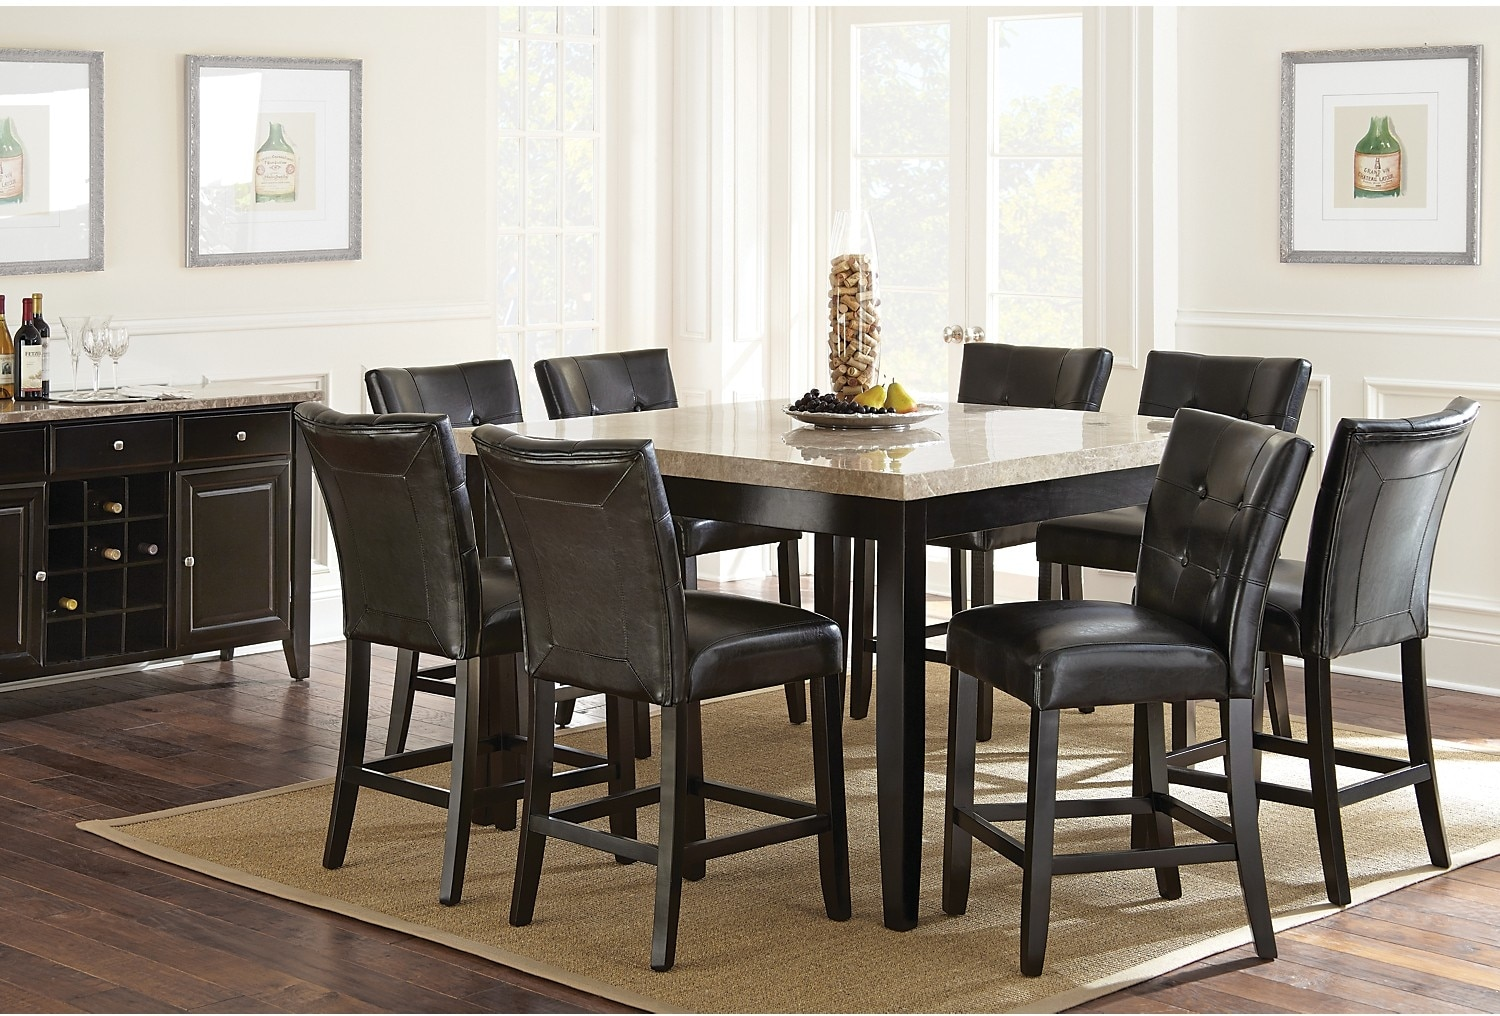 Dining Room Furniture - Montibello 8-Piece Counter-Height Dining Package